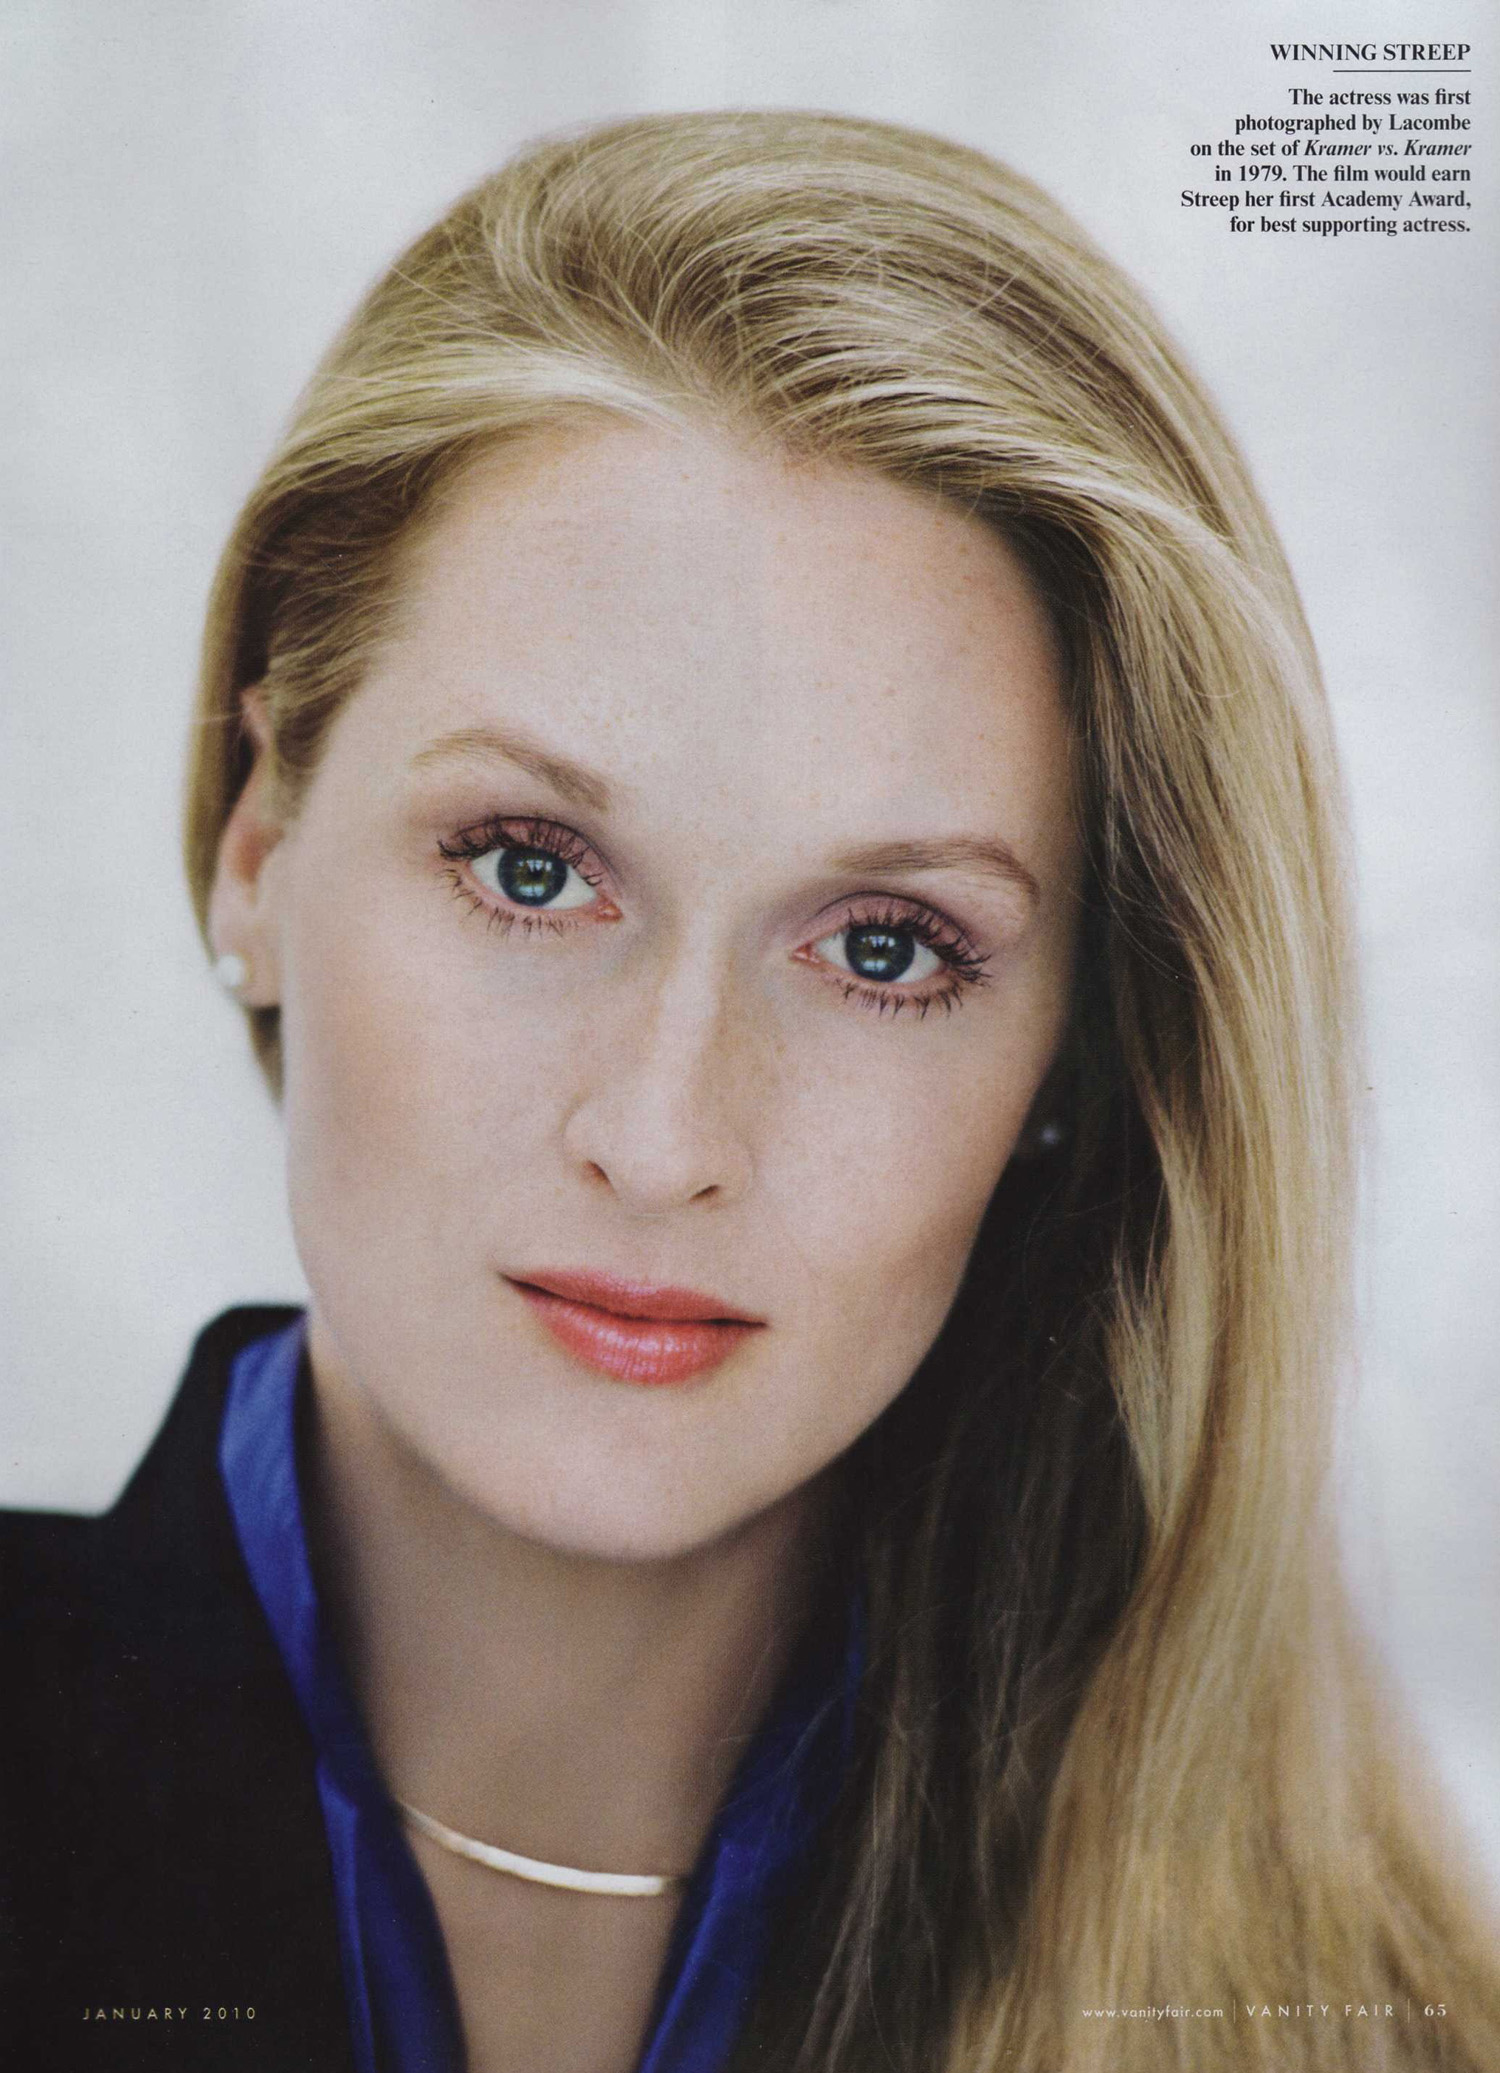 MERYL STREEP TO RECEIVE KENNEDY CENTER HONORS